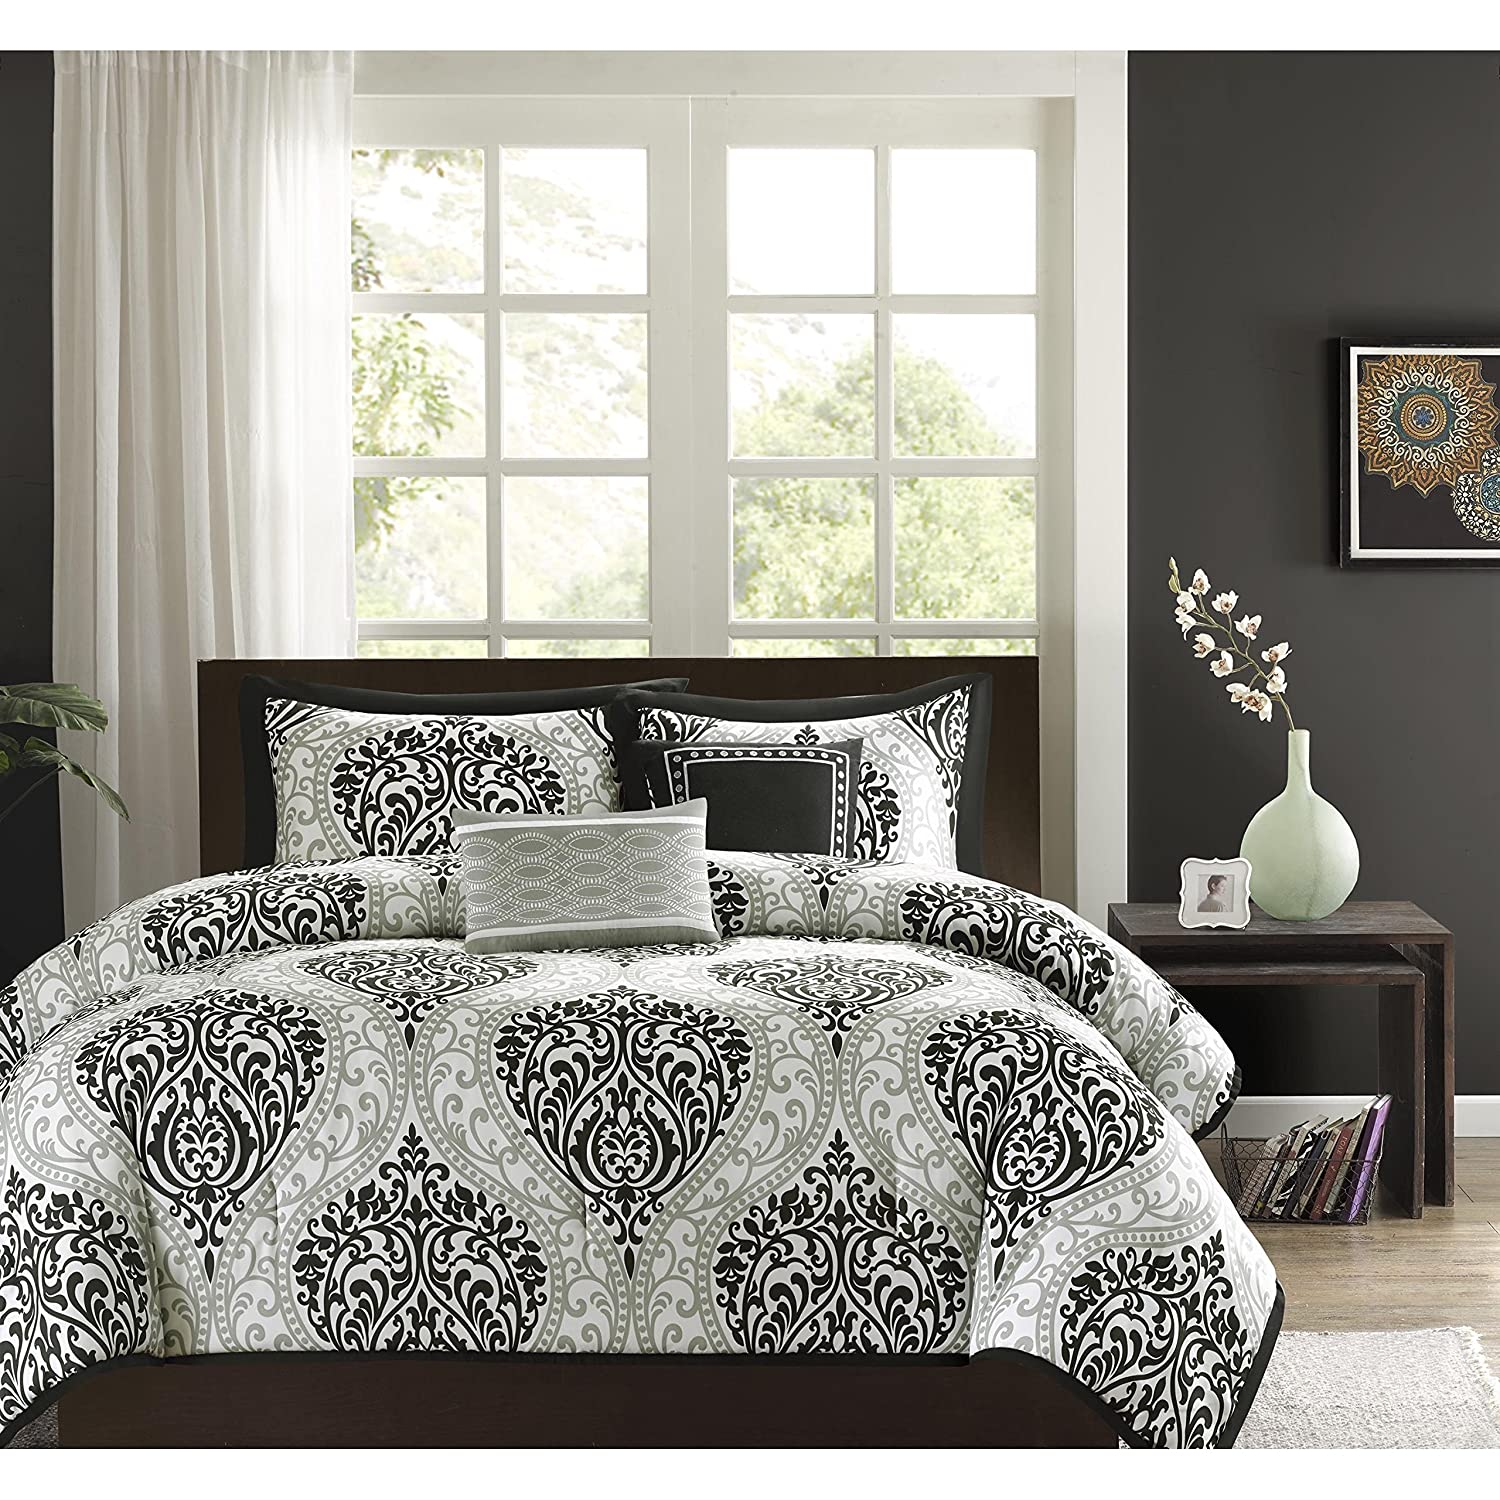 tribal embroidery in x features xl list print set of public s on giftster black taupe bed comforter gift includes w shades twin and grey neutral bedroom beyond bath l